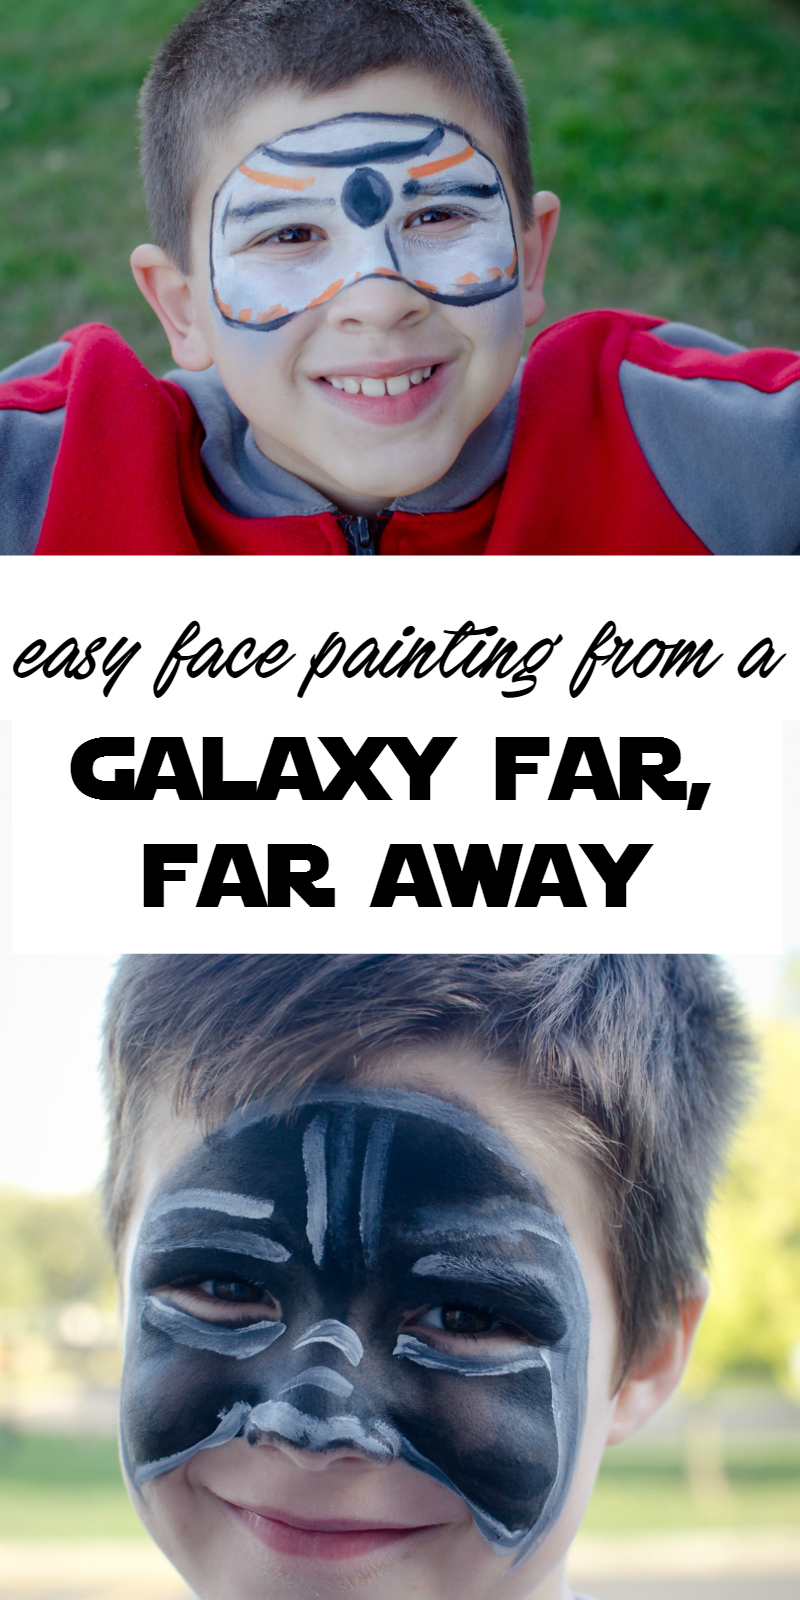 easy-face-painting-from-a-galaxy-far-far-away